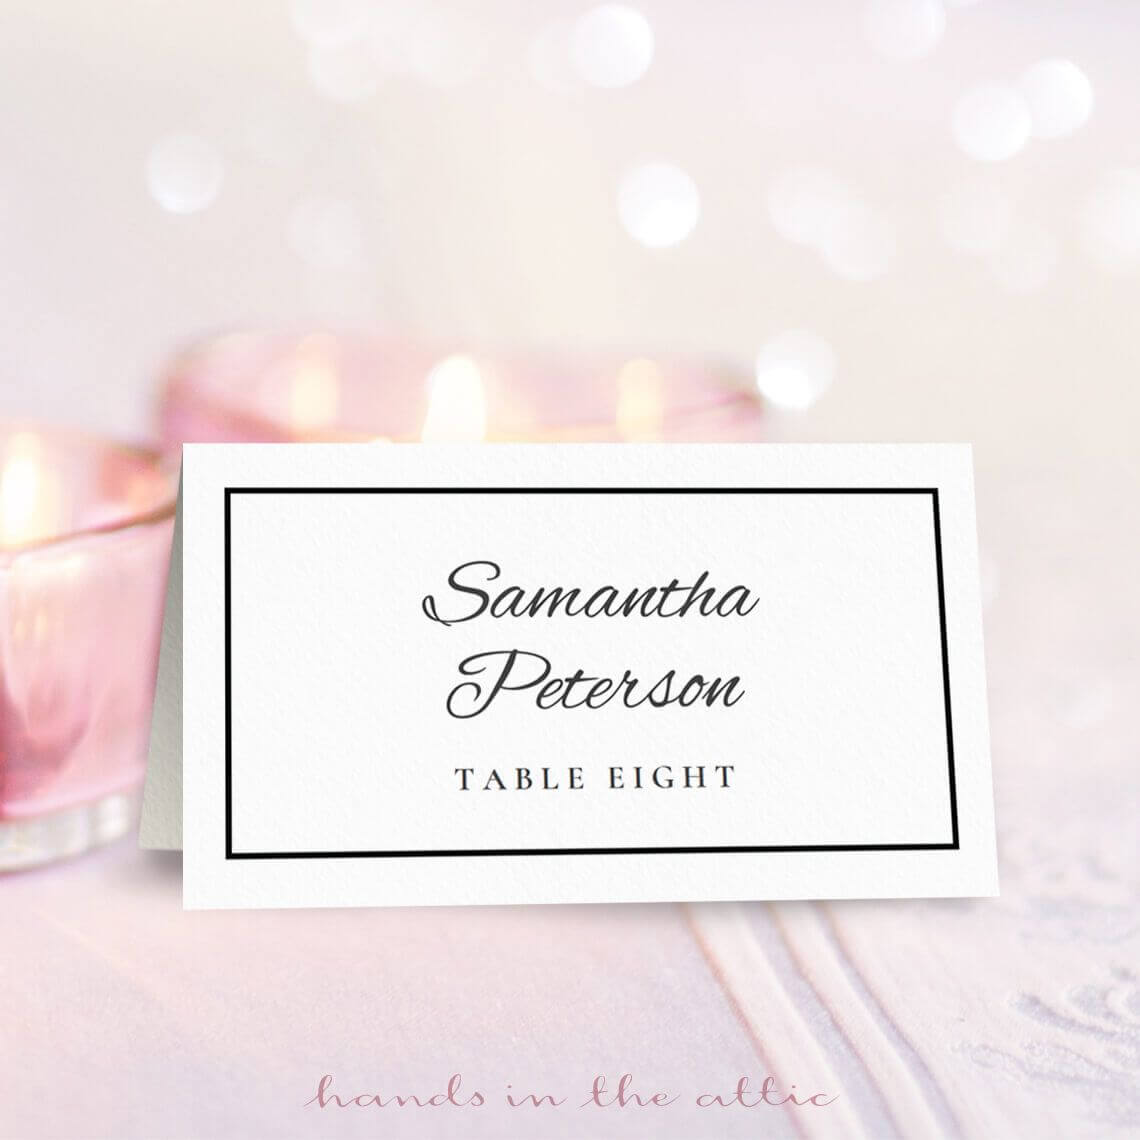 002 Template Ideas For Place Outstanding Cards Free 4 Per within Place Card Template 6 Per Sheet